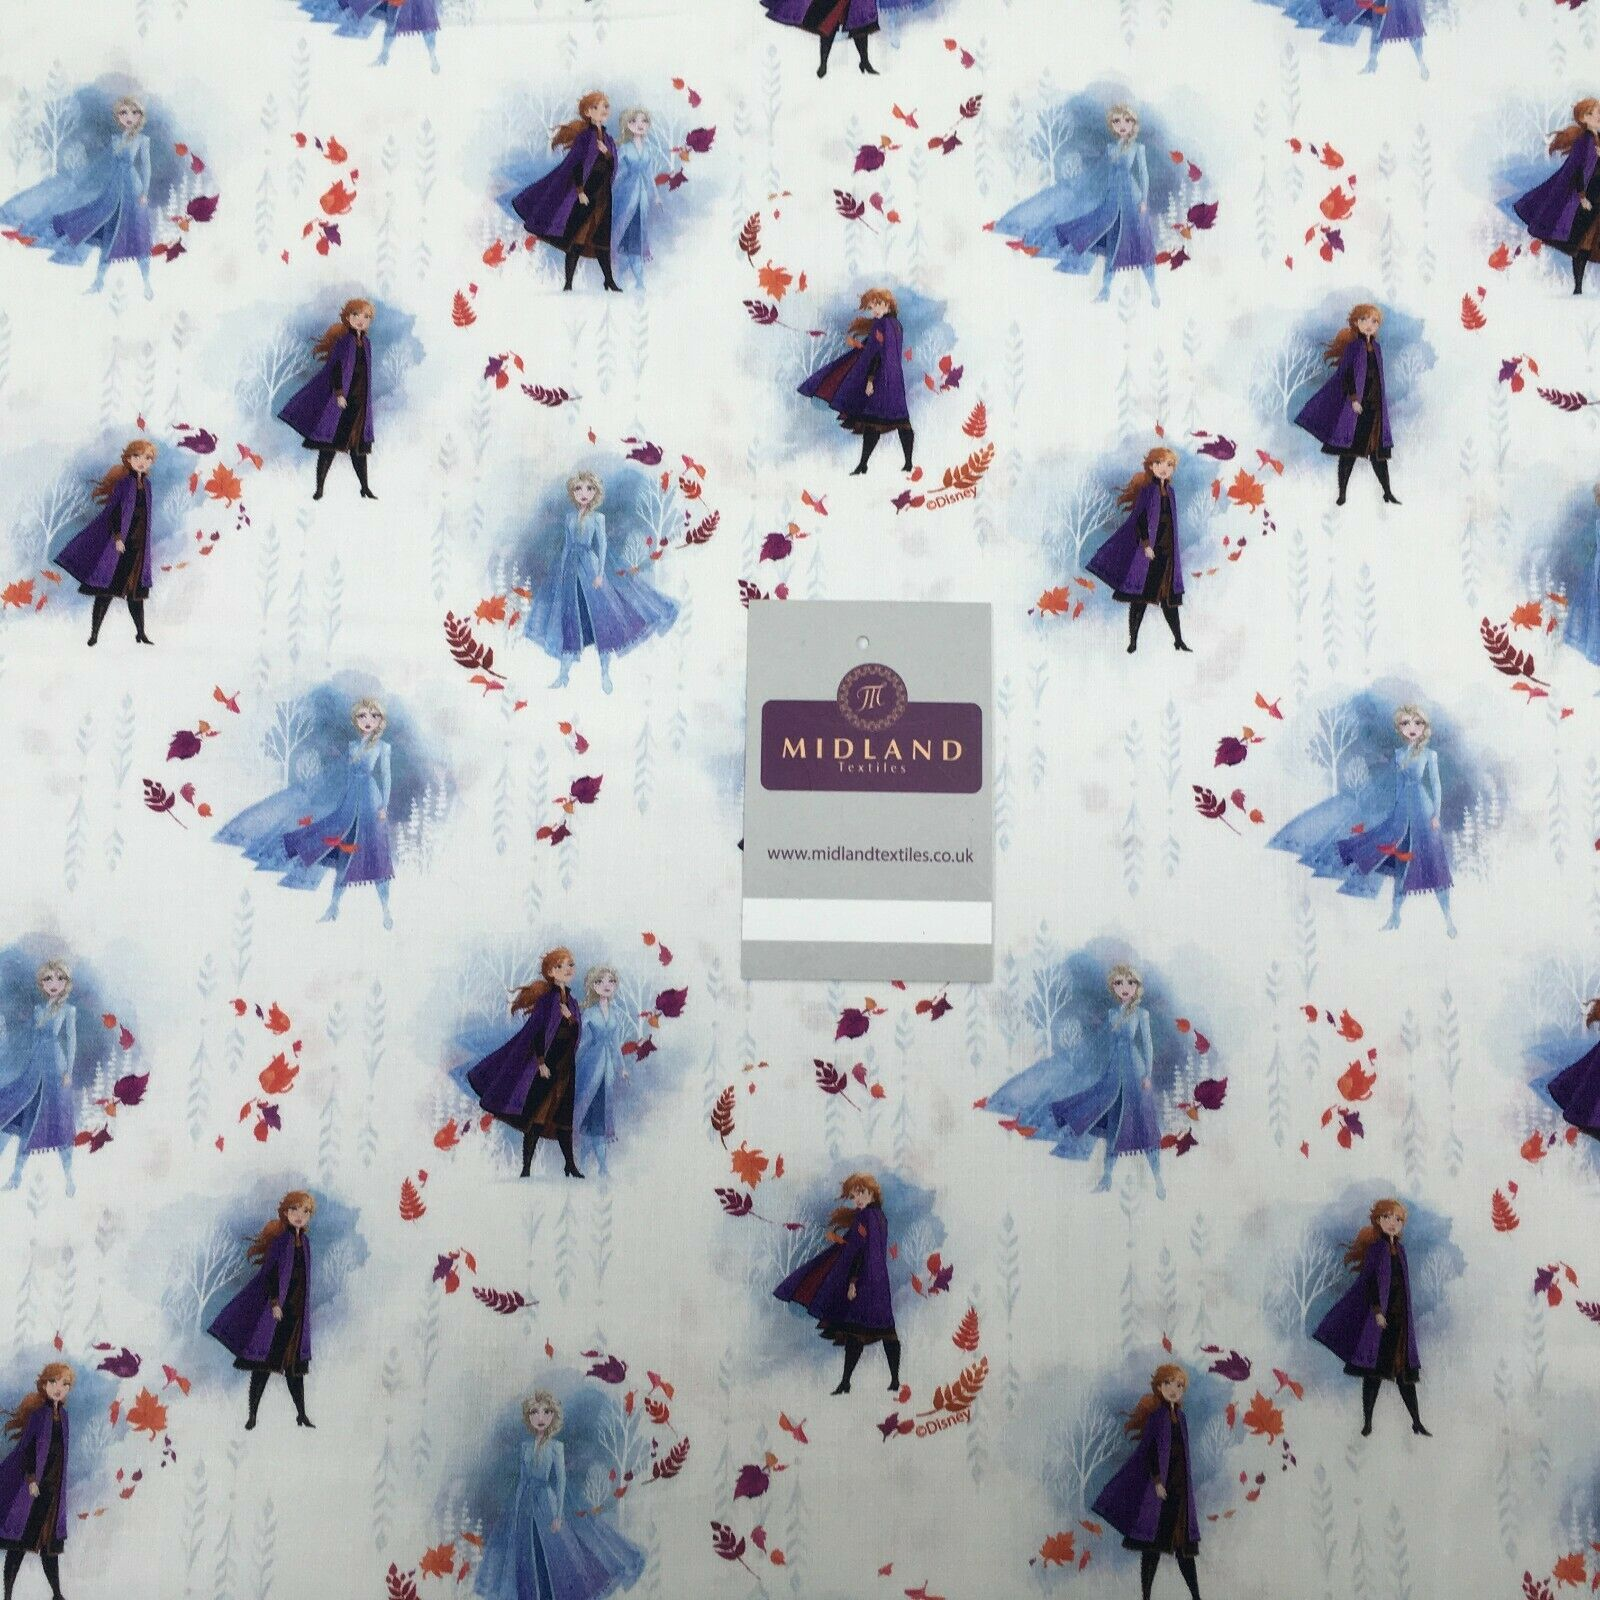 White Frozen Licensed Digital Printed 100% Cotton Fabric MH1453-2 Mtex